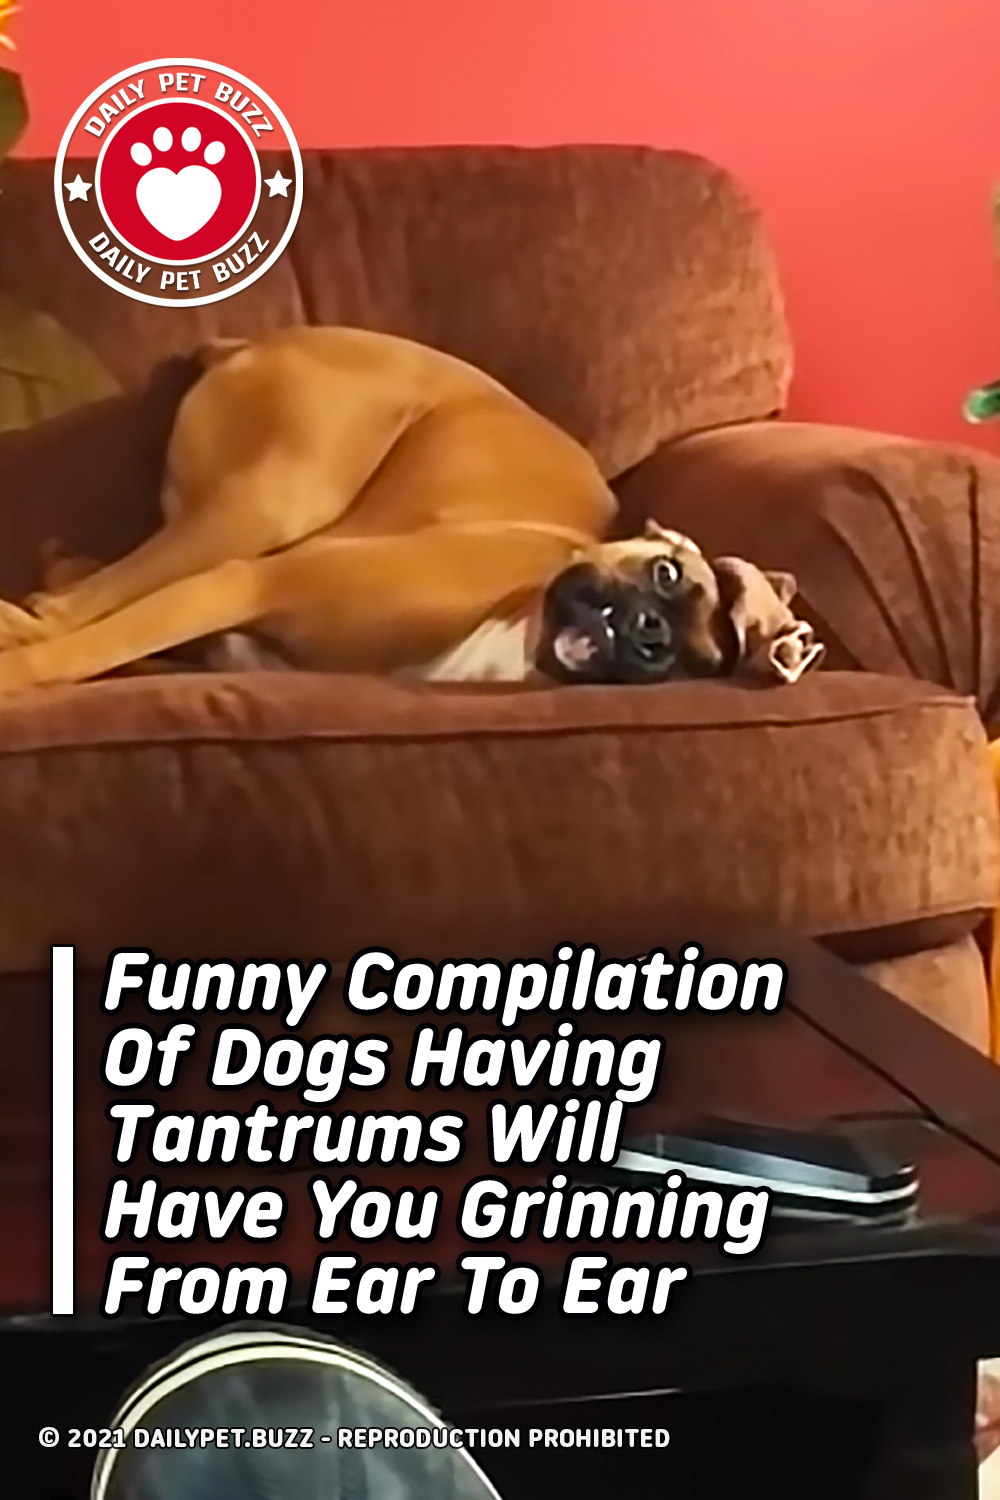 Funny Compilation Of Dogs Having Tantrums Will Have You Grinning From Ear To Ear